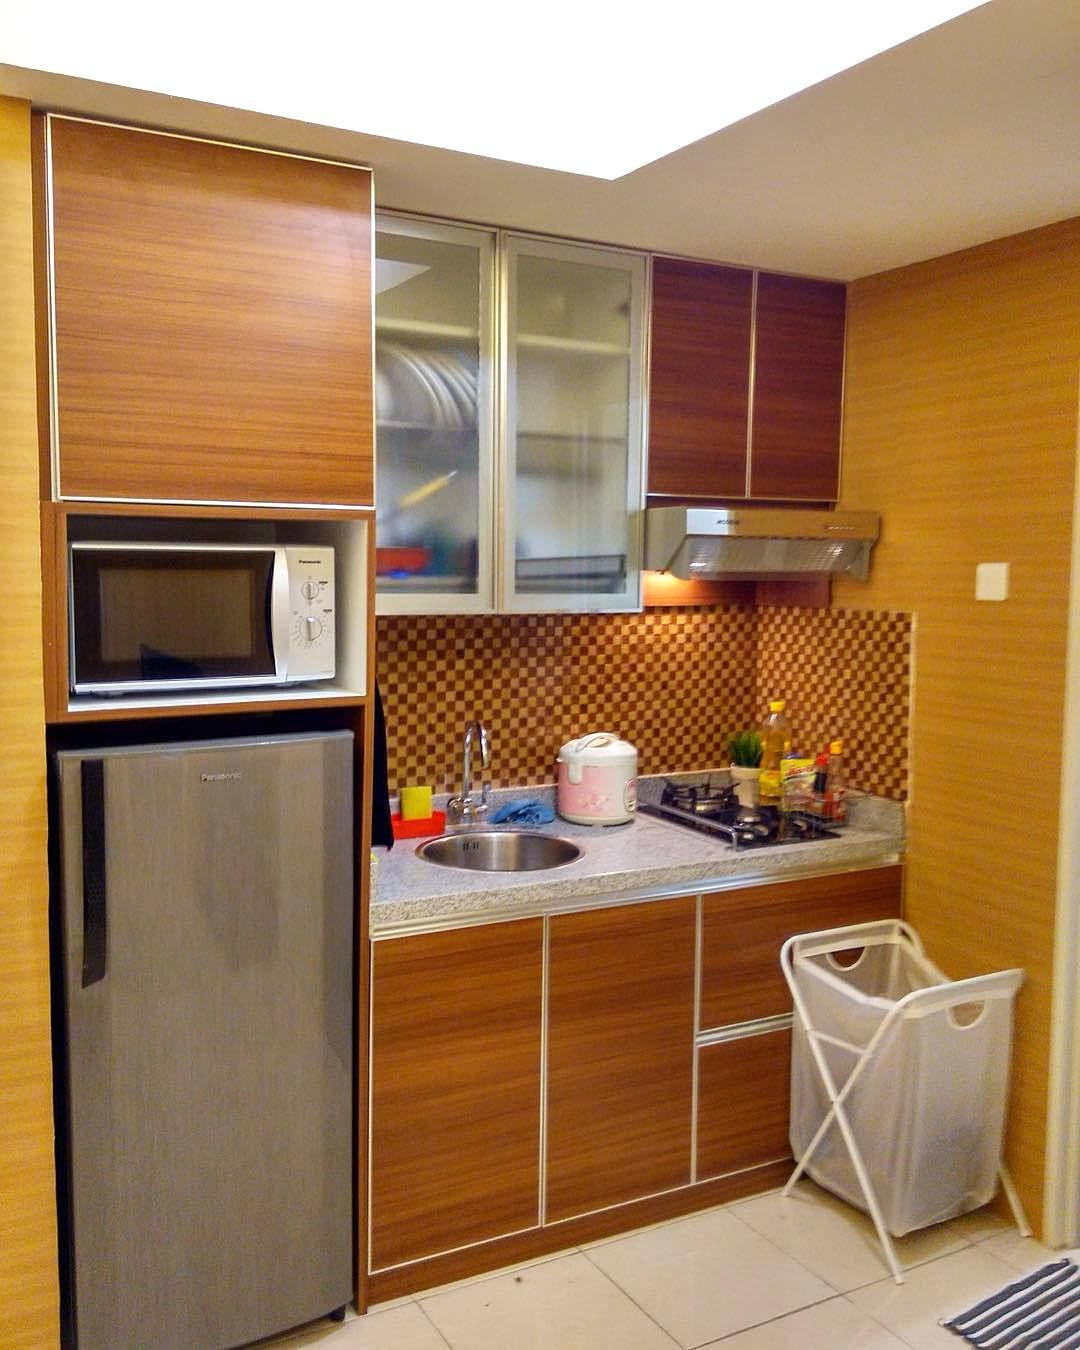 Kitchen Set Mini Modern Ide dapur, Desain interior, Desain